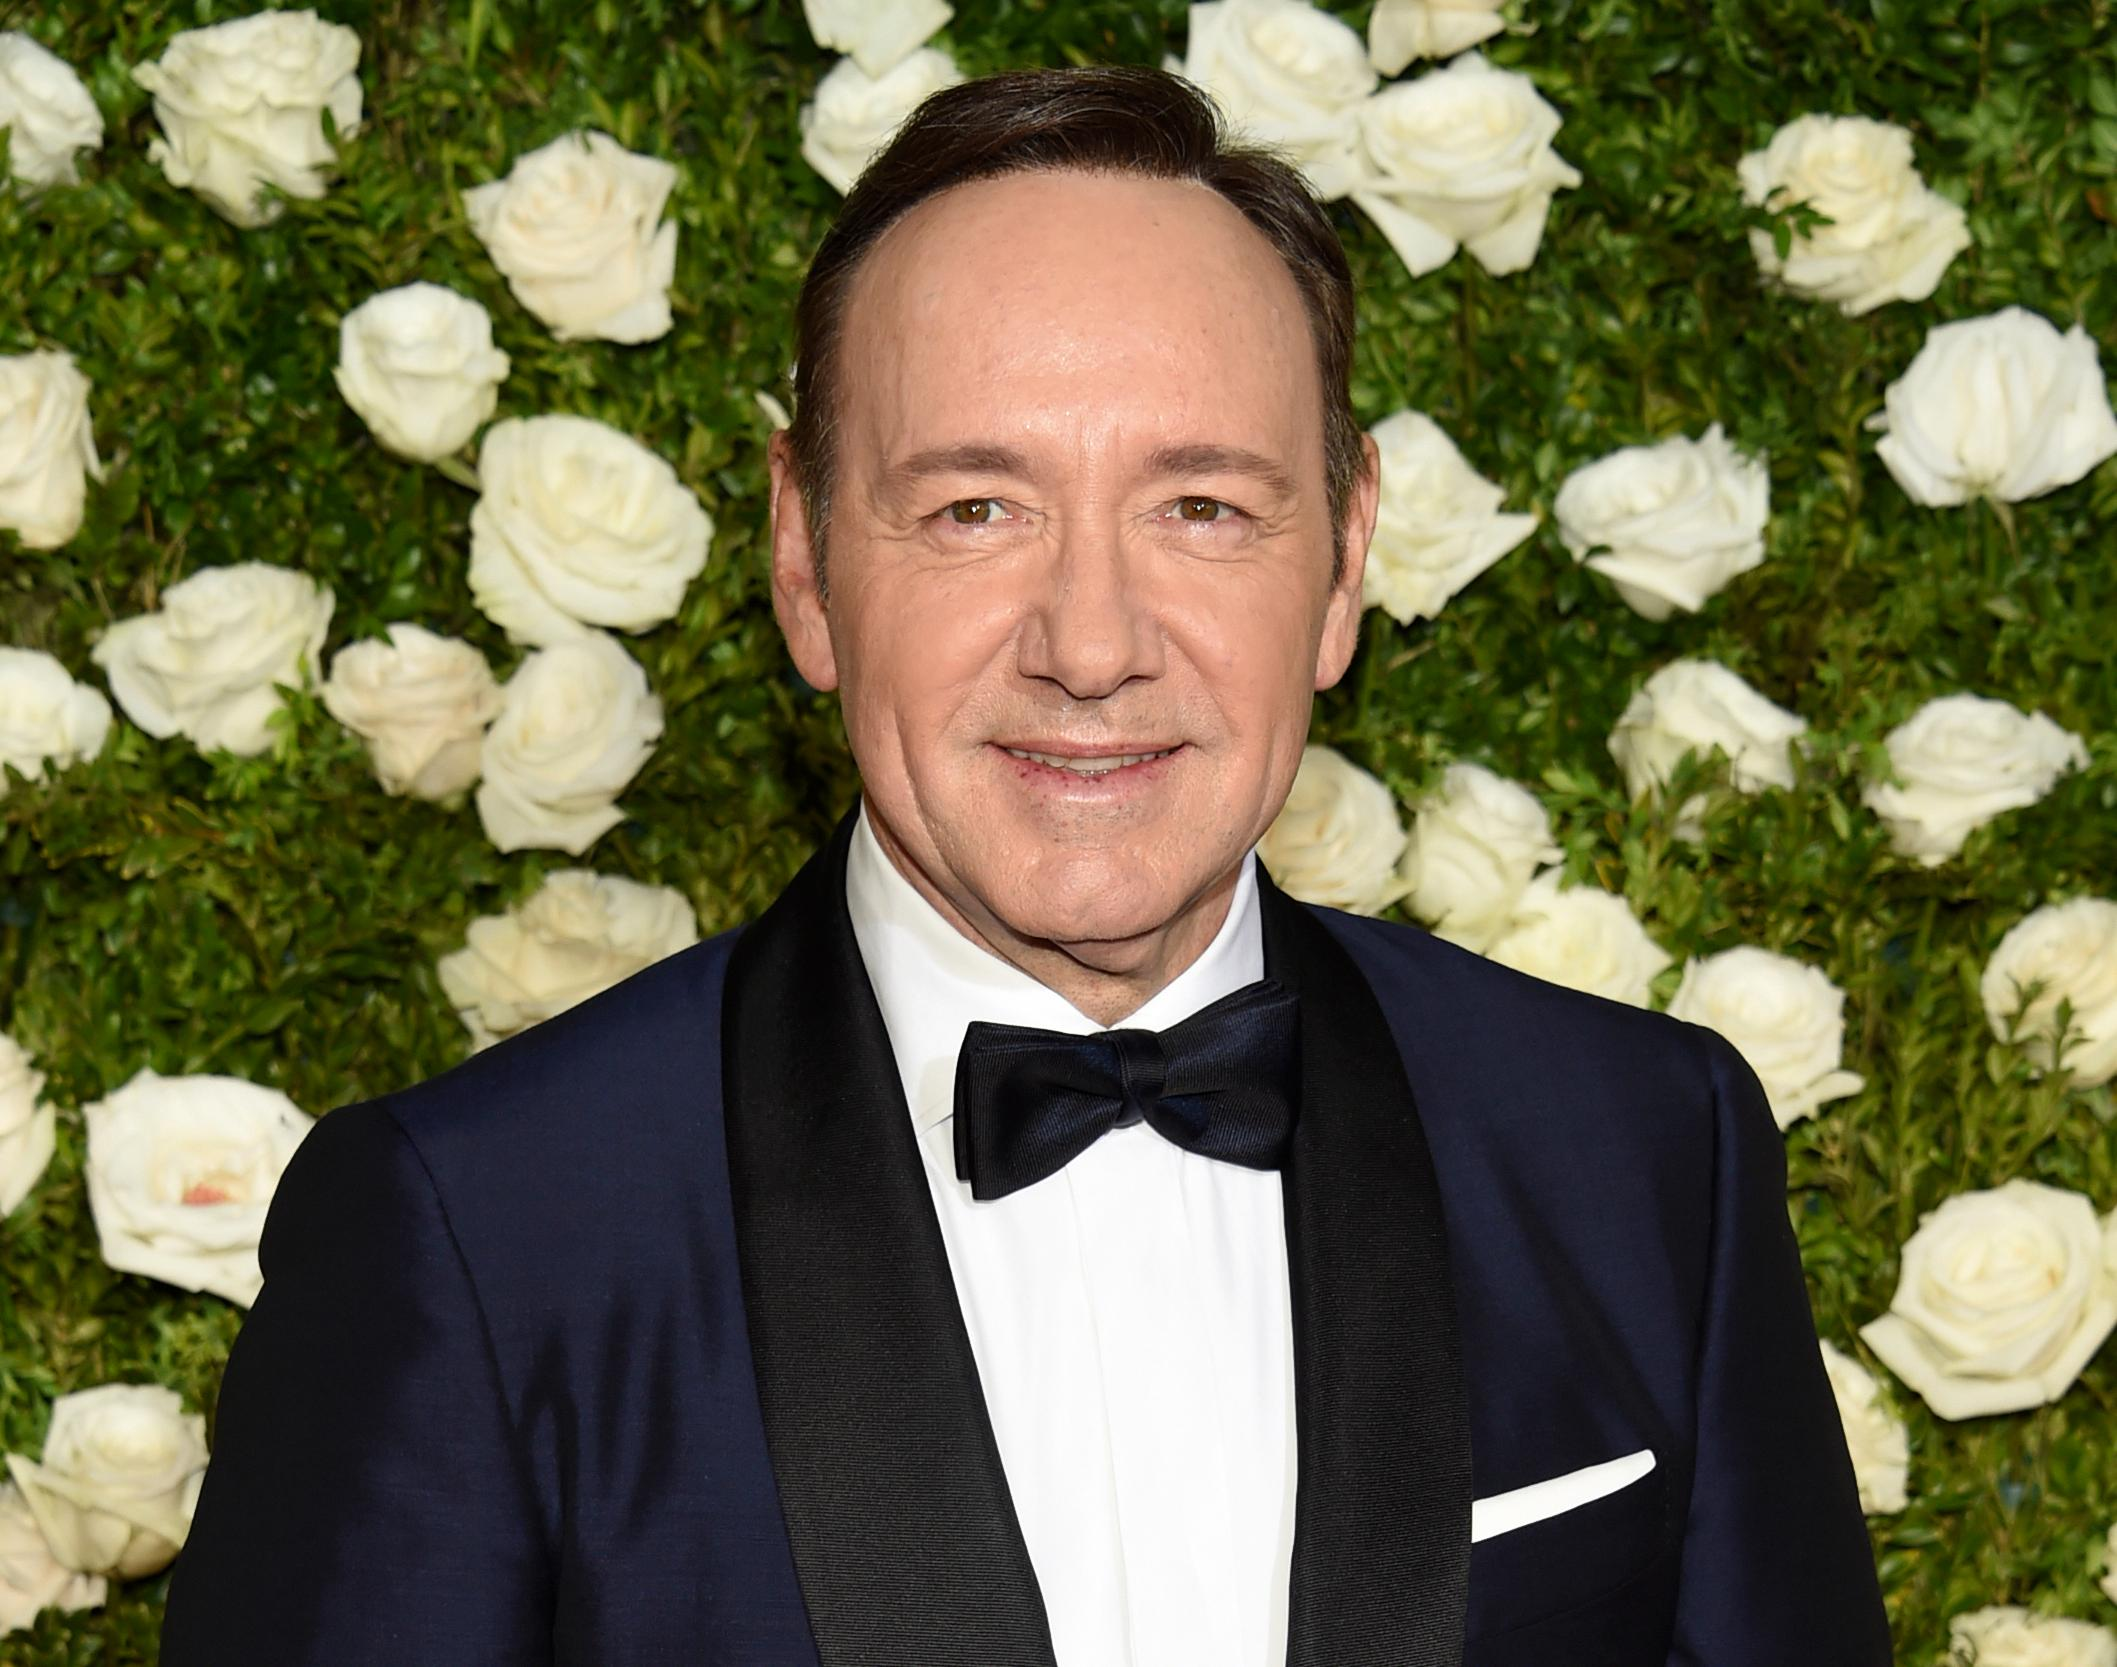 FILE - In this June 11, 2017, file photo, Kevin Spacey arrives at the 71st annual Tony Awards at Radio City Music Hall in New York. (Photo by Evan Agostini/Invision/AP, File)